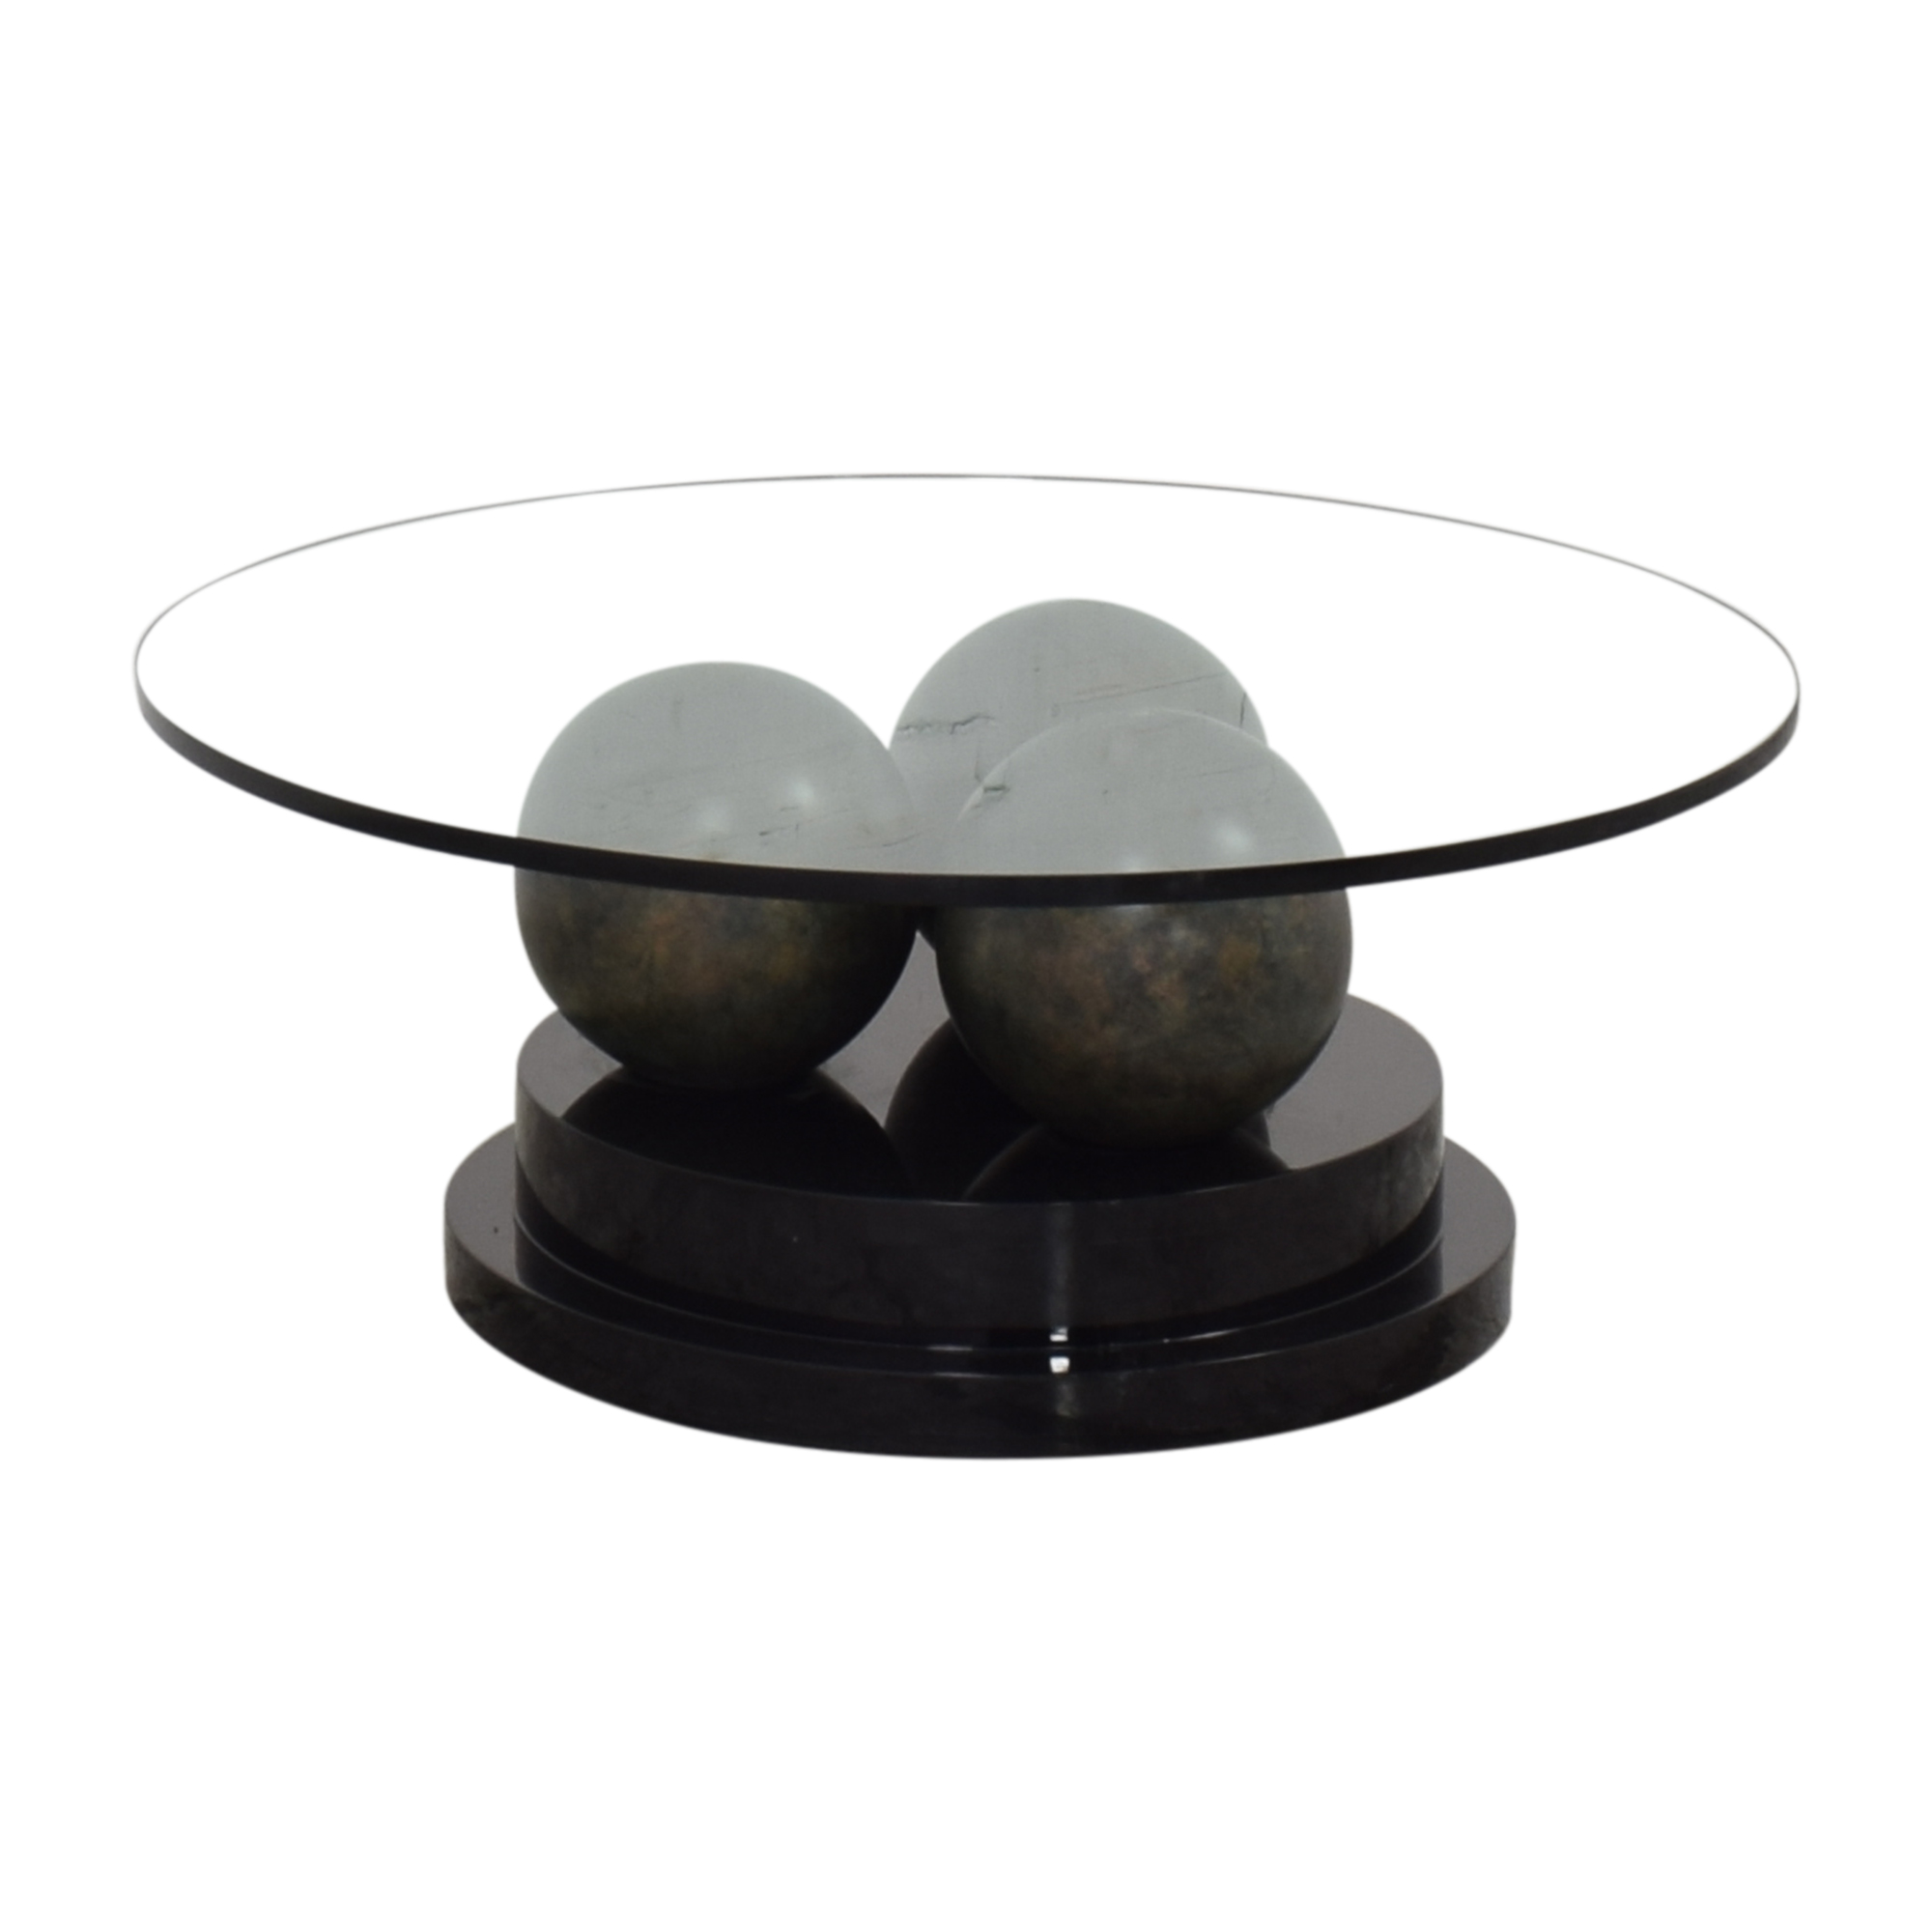 buy Directional Furniture Directional Furniture Glass Coffee Table online